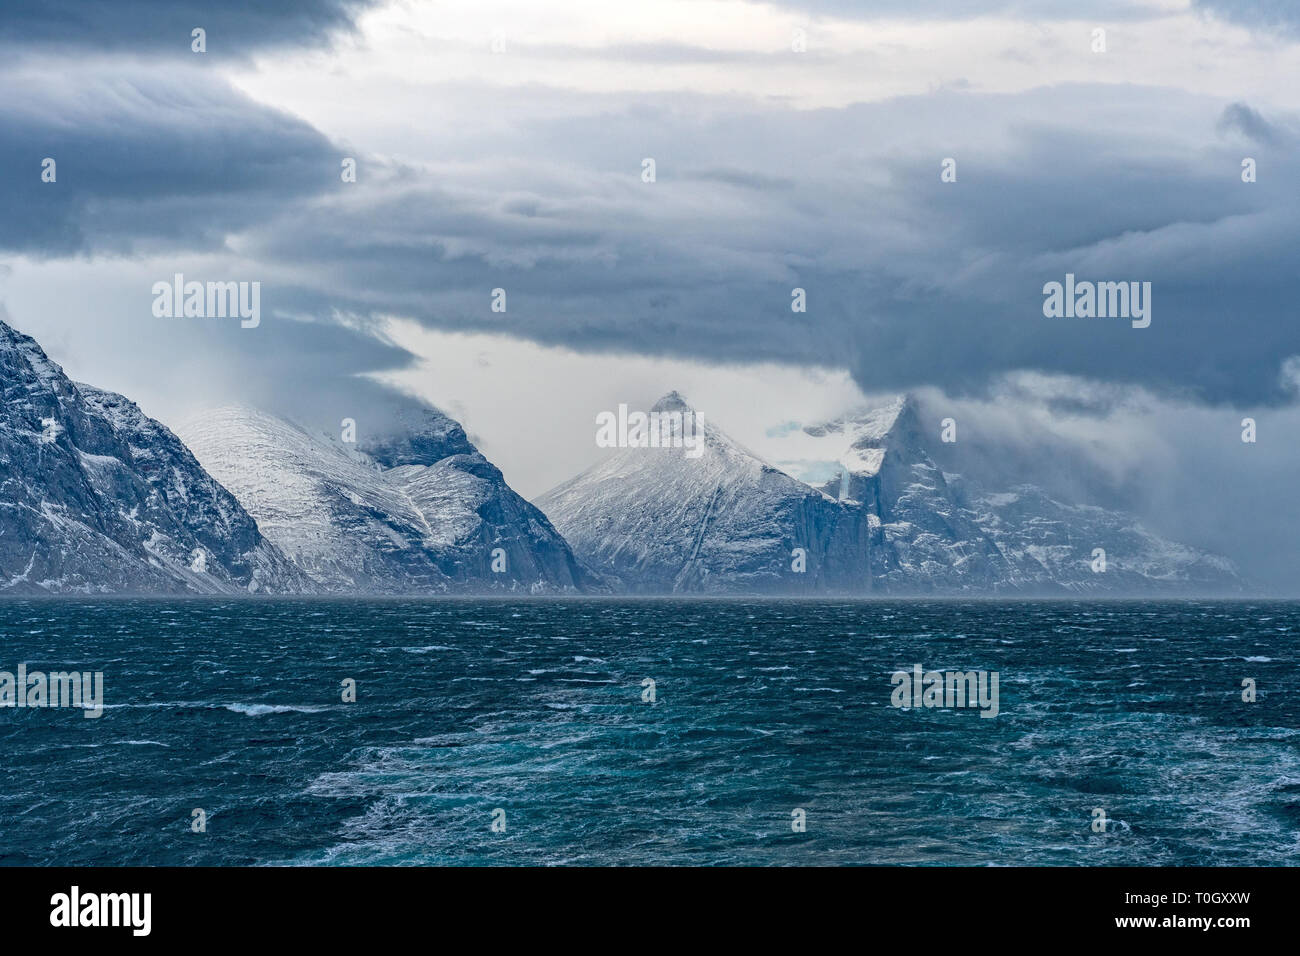 Storm Clouds above an Ocean Fjord in the Sam Ford Fjord in Baffin Island in Nunavut, Canada - Stock Image